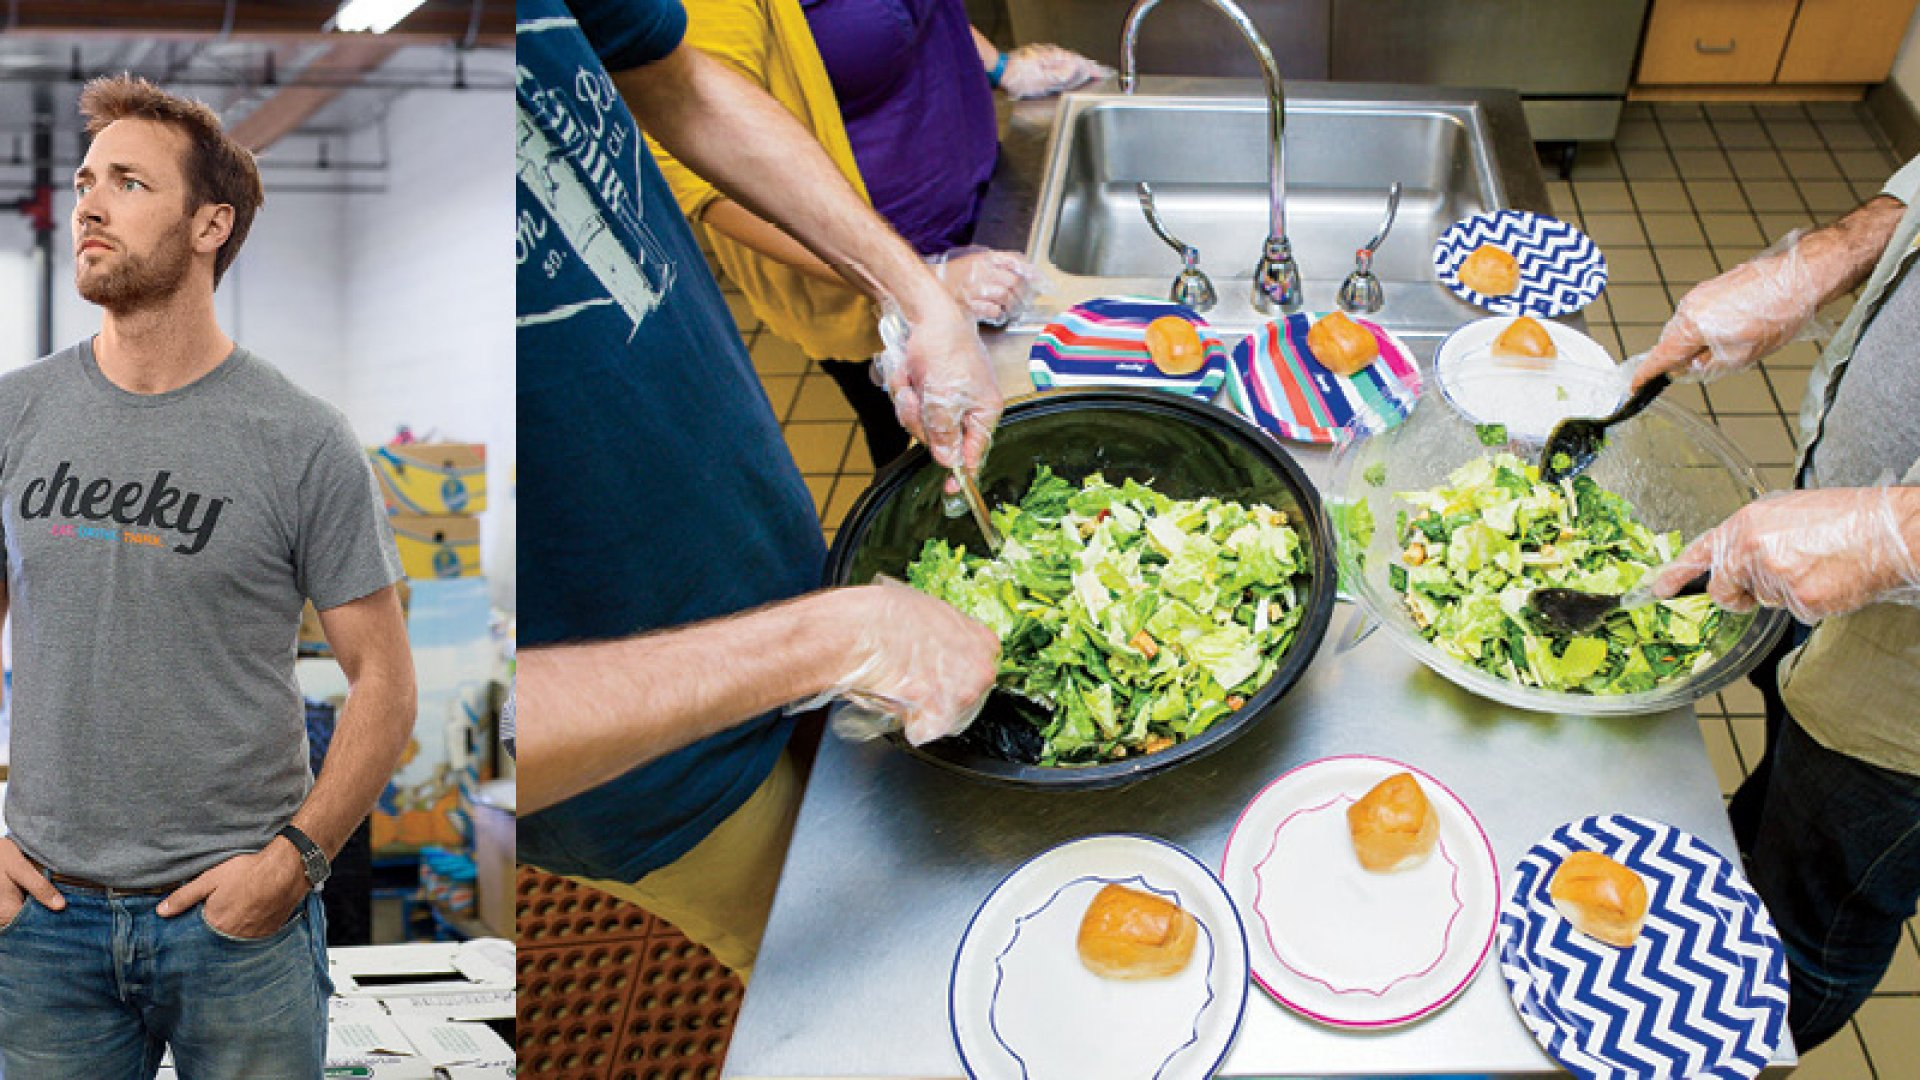 How This Company Sells Tableware to Feed the Hungry